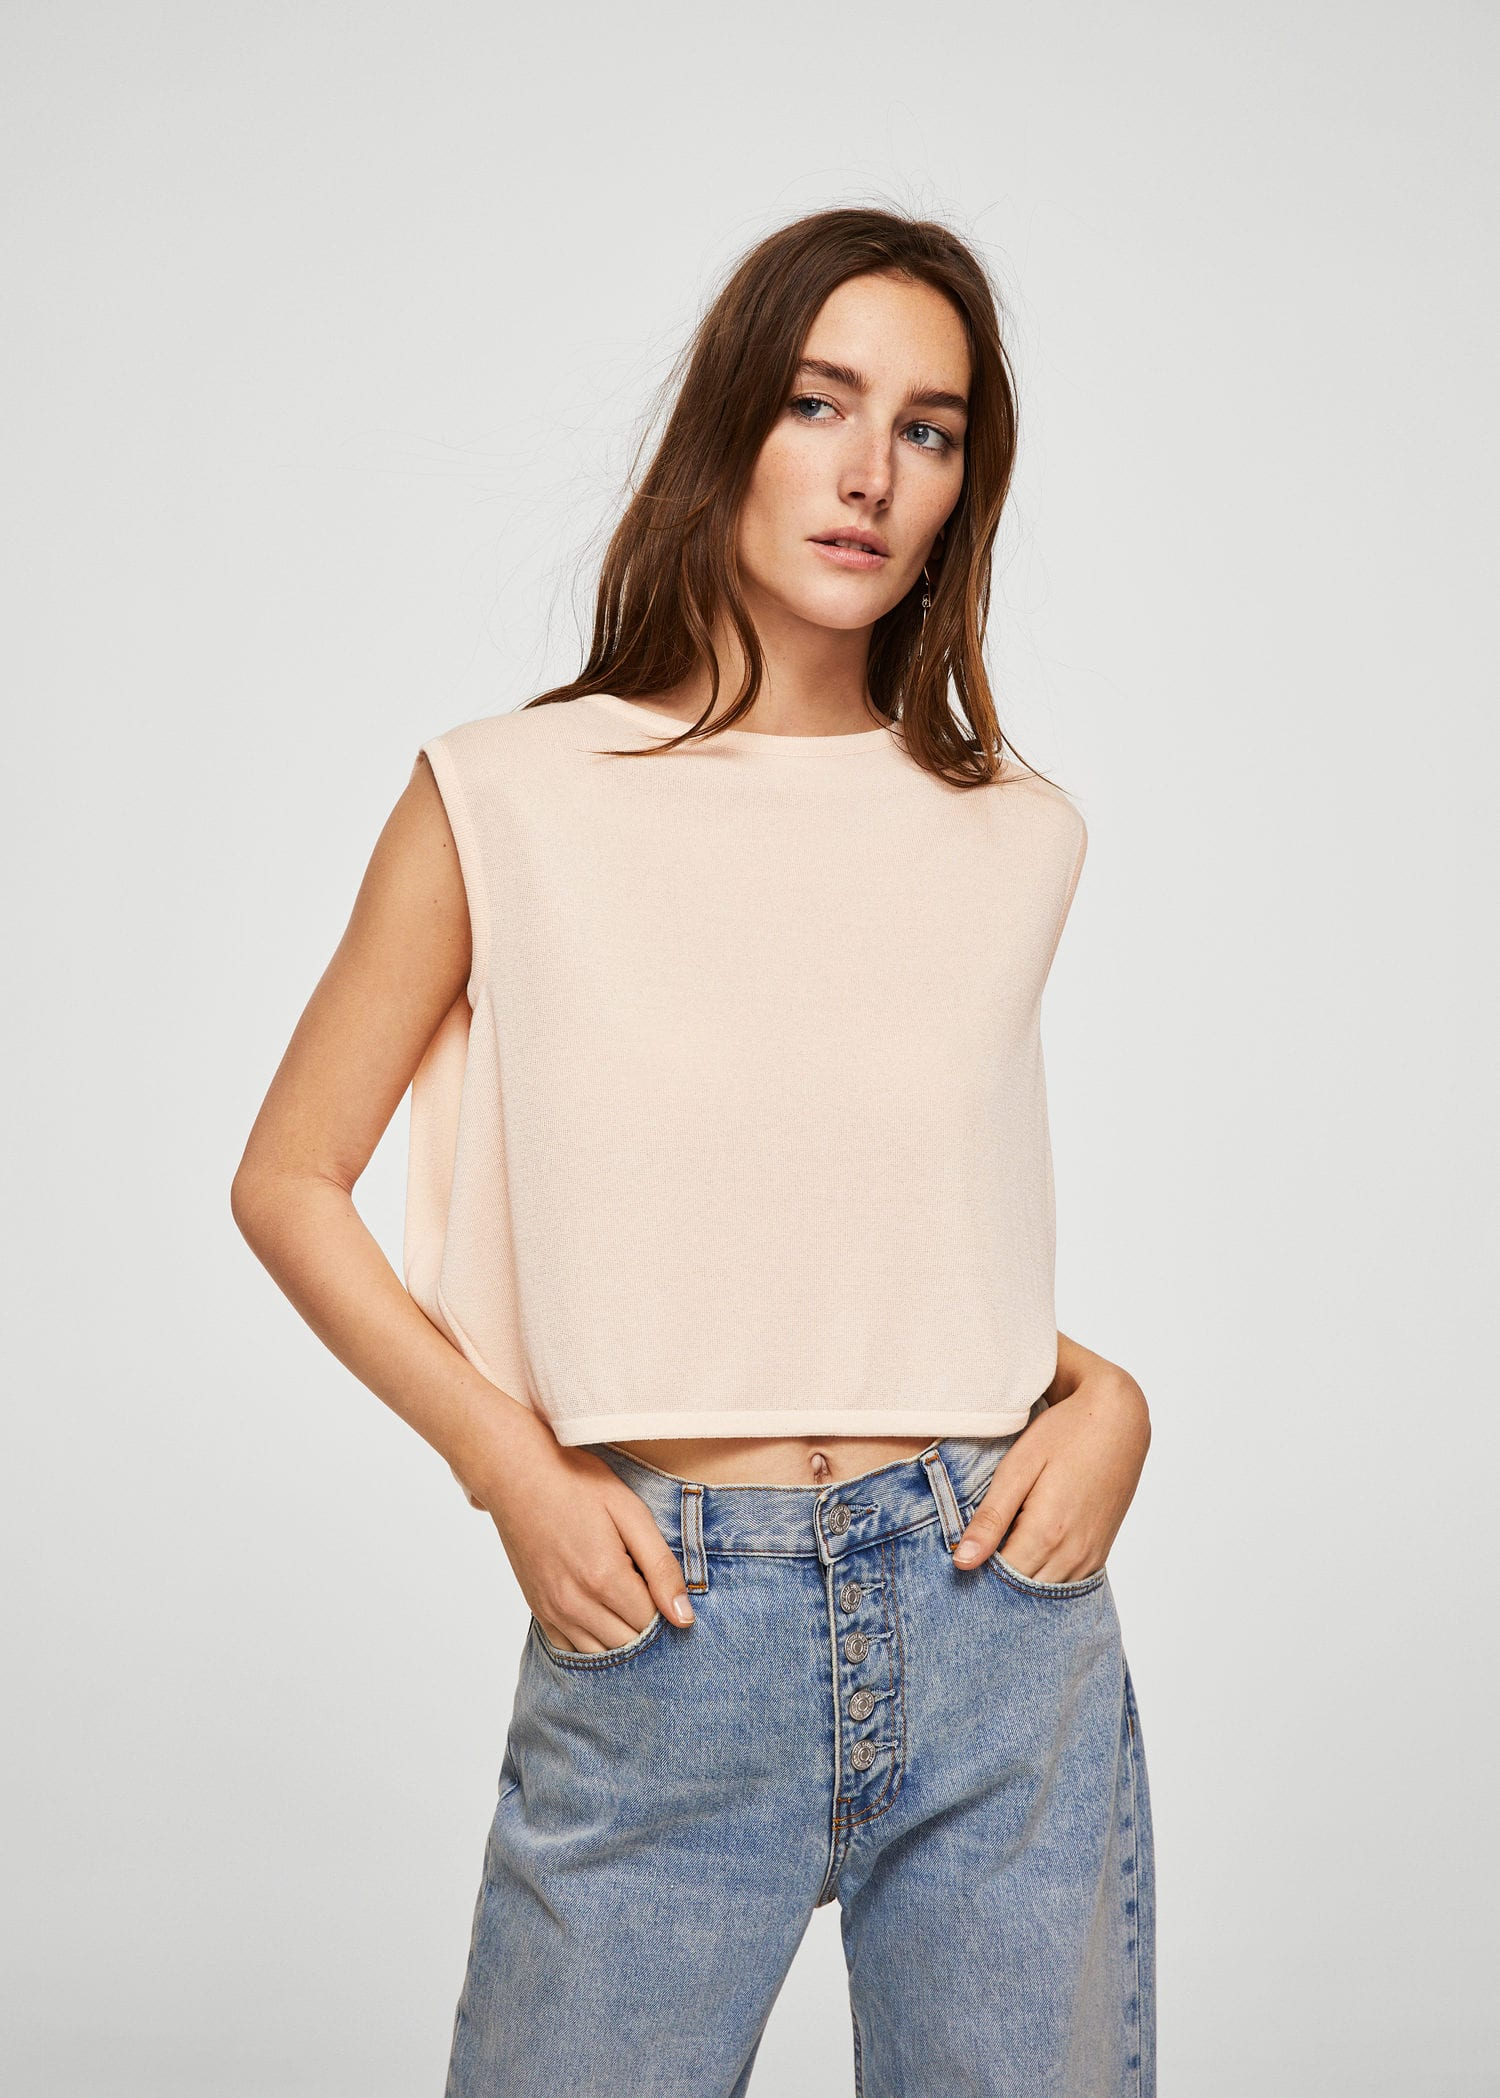 Cropped layer top